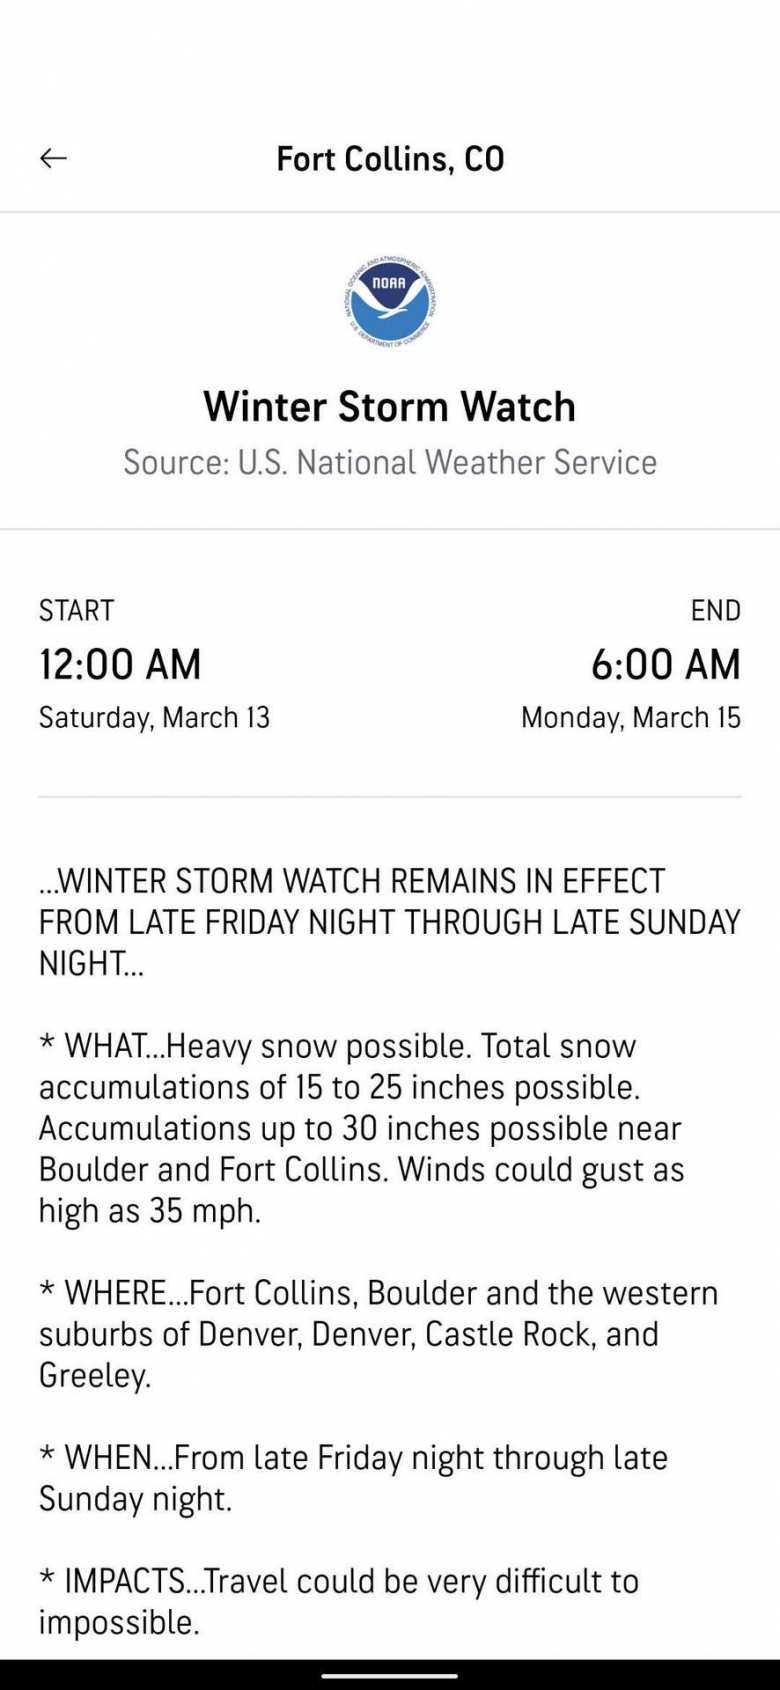 Winter Storm Watch by U.S. National Weather Service for Fort Collins on March 13, 2021